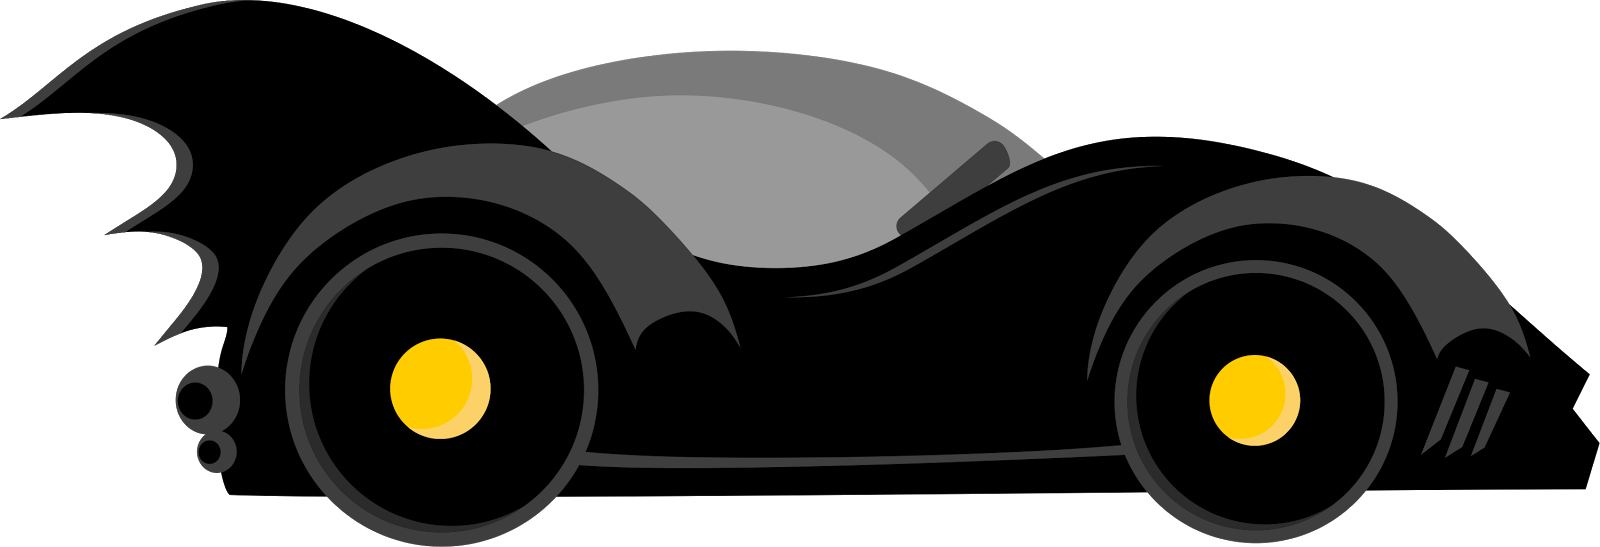 Batman Lego Car Clipart Png